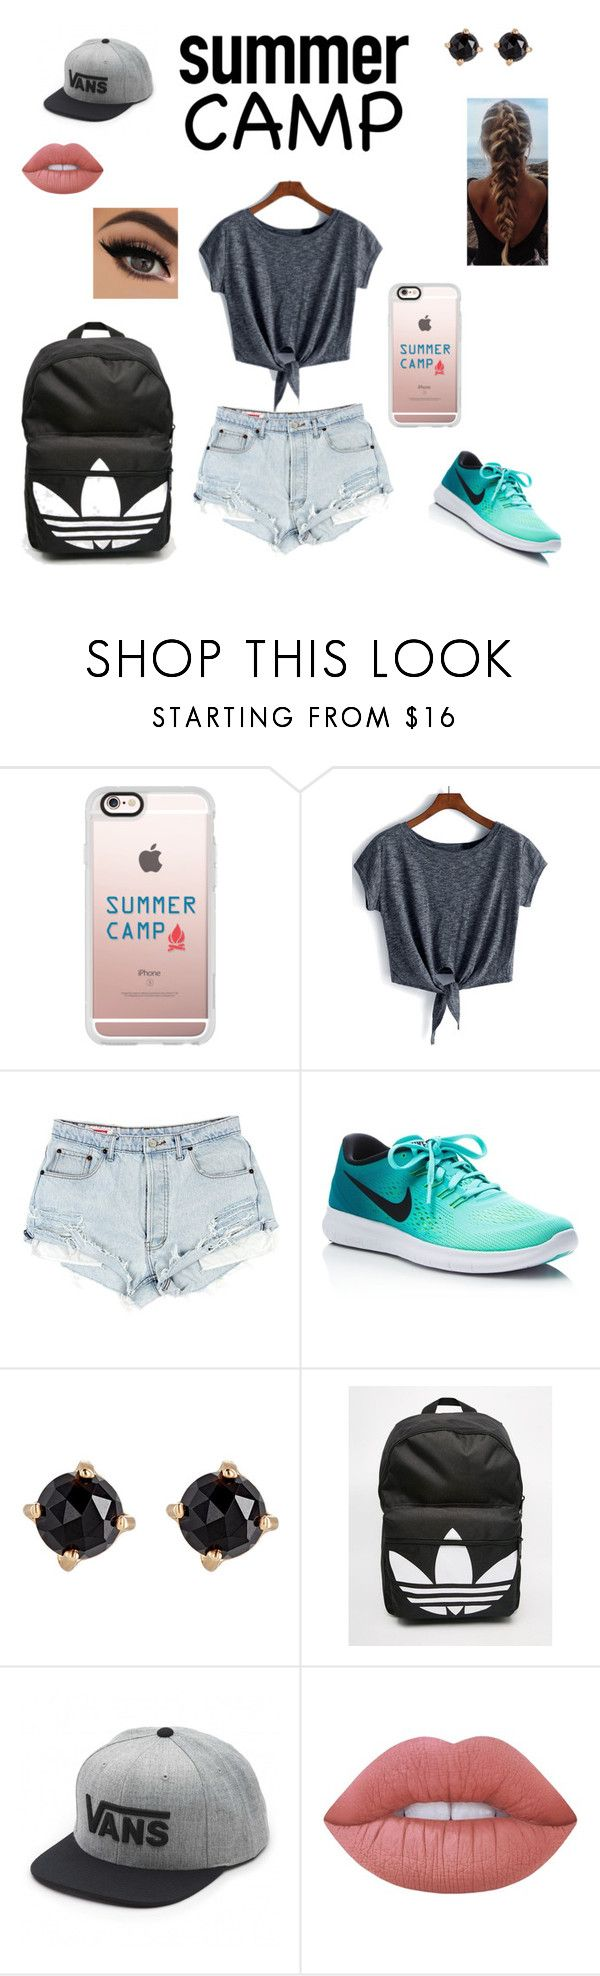 """""""Summer Camp With Style"""" by divadancer23 ❤ liked on Polyvore featuring Casetify, NIKE, Irene Neuwirth, adidas, Vans, Lime Crime, summercamp and 60secondstyle"""